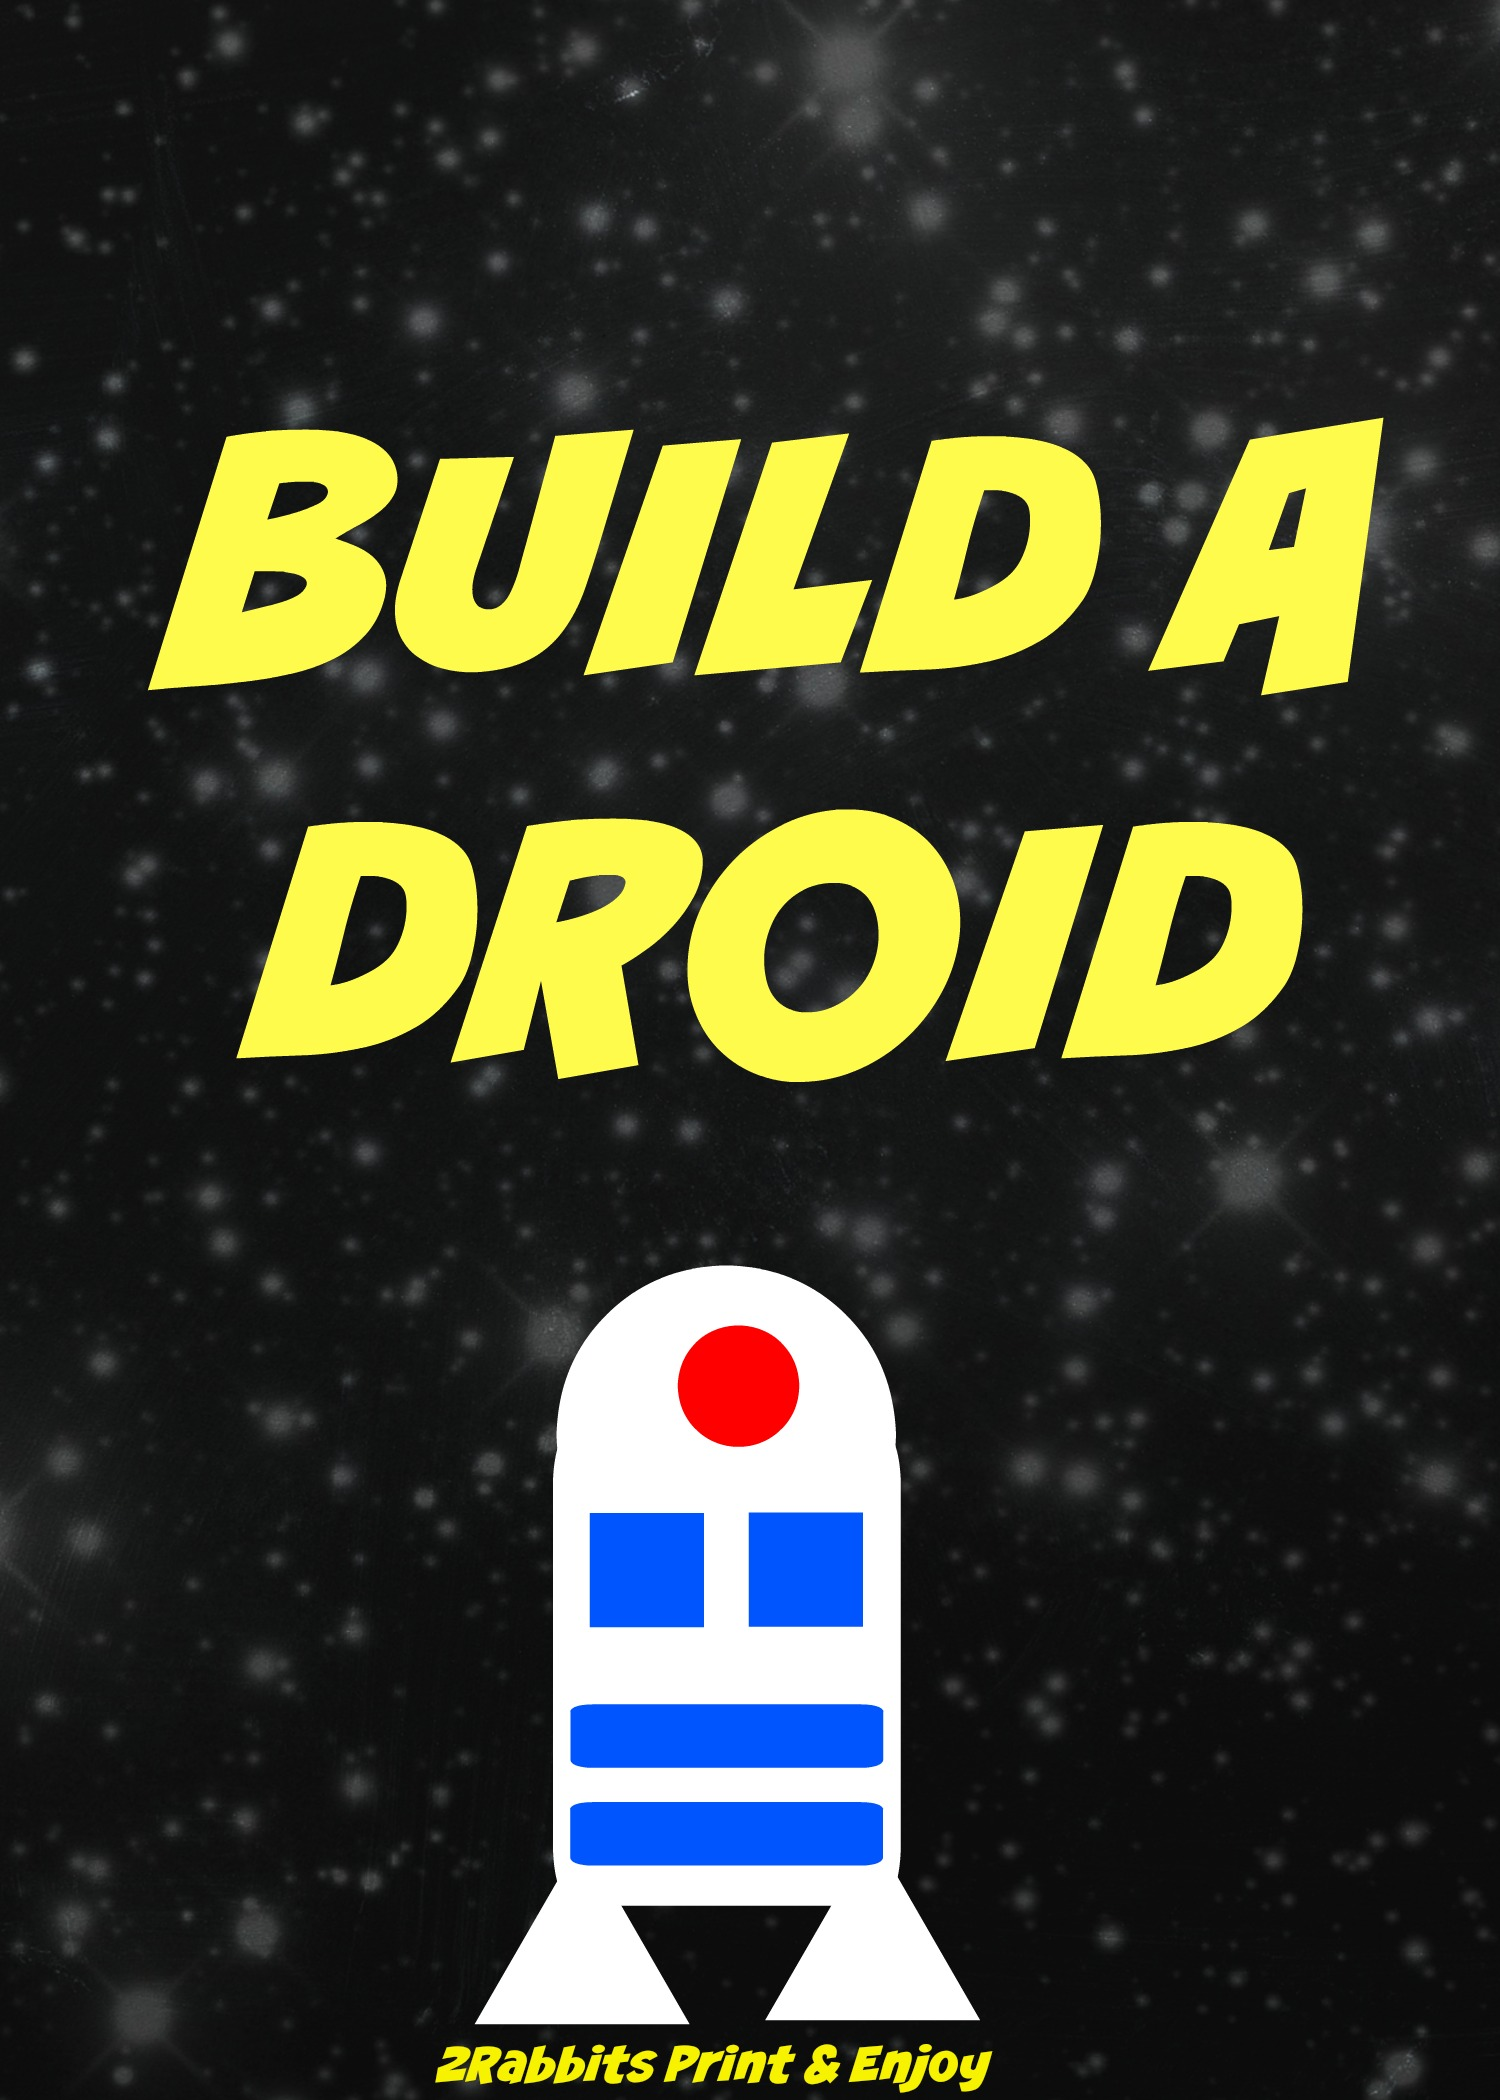 Free Printable Sign Star Wars Build a Droid